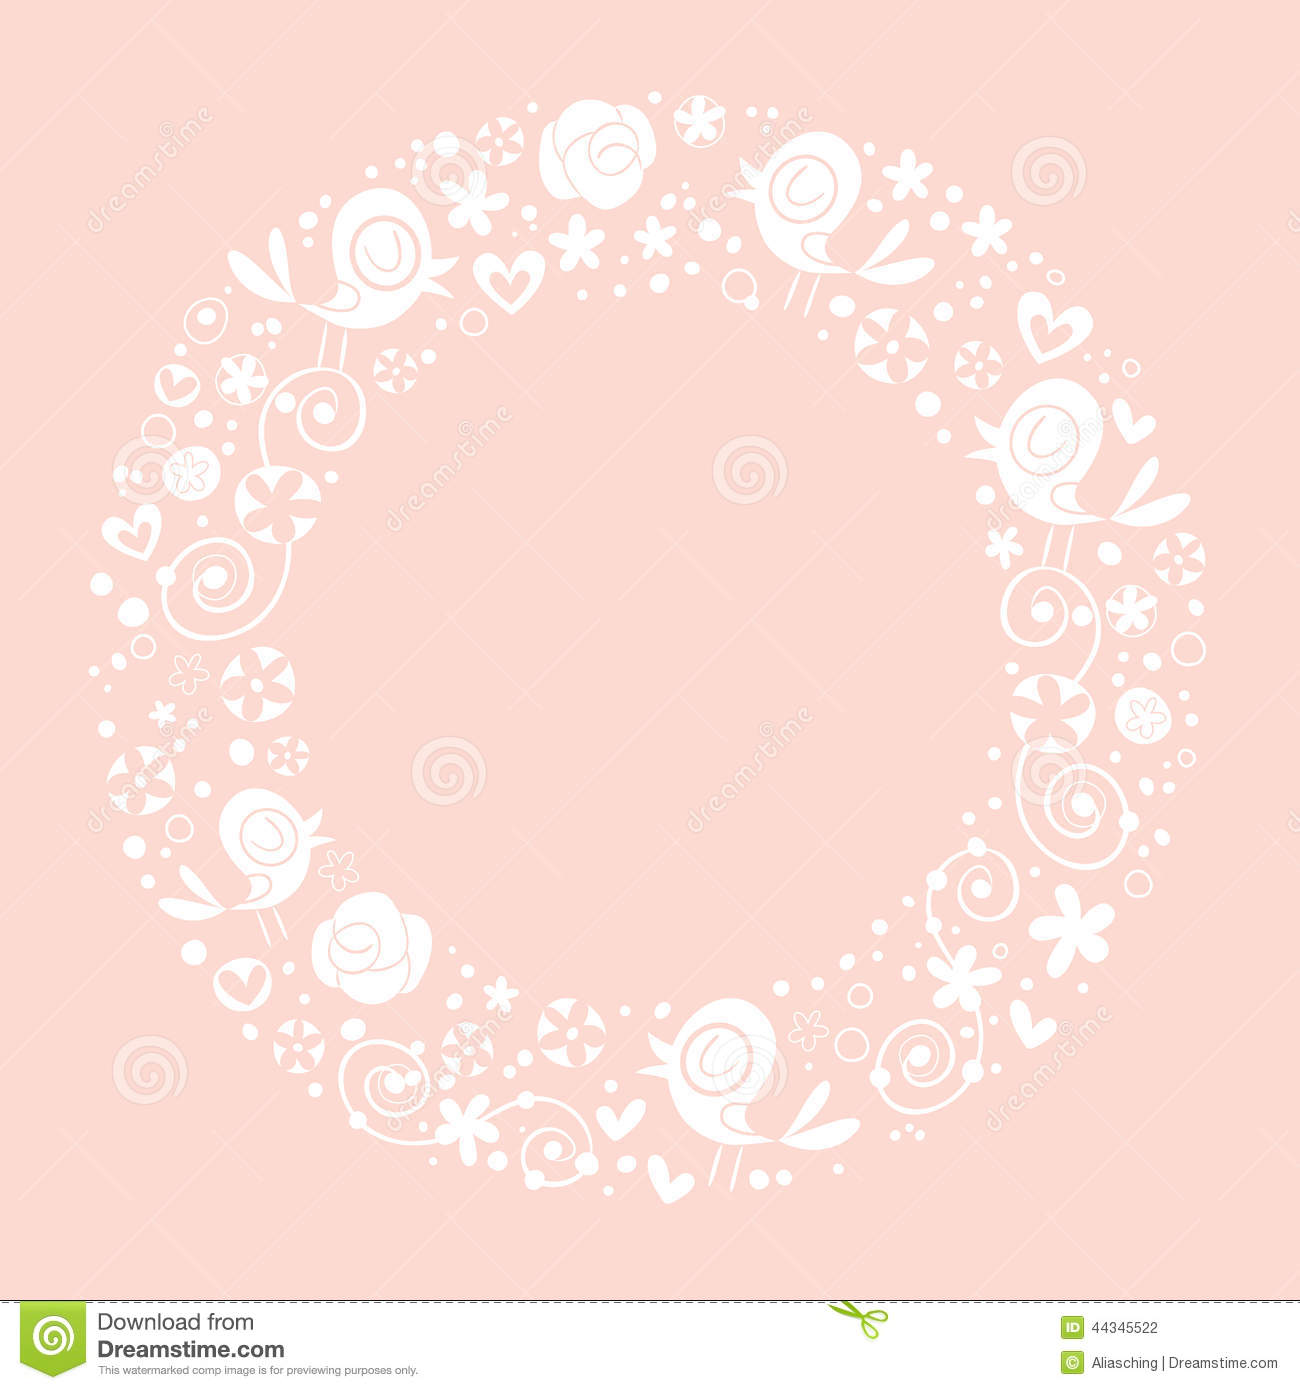 Vector round frame with pink flowers on white background in pastel - Background Border Bright Circle Design Frame